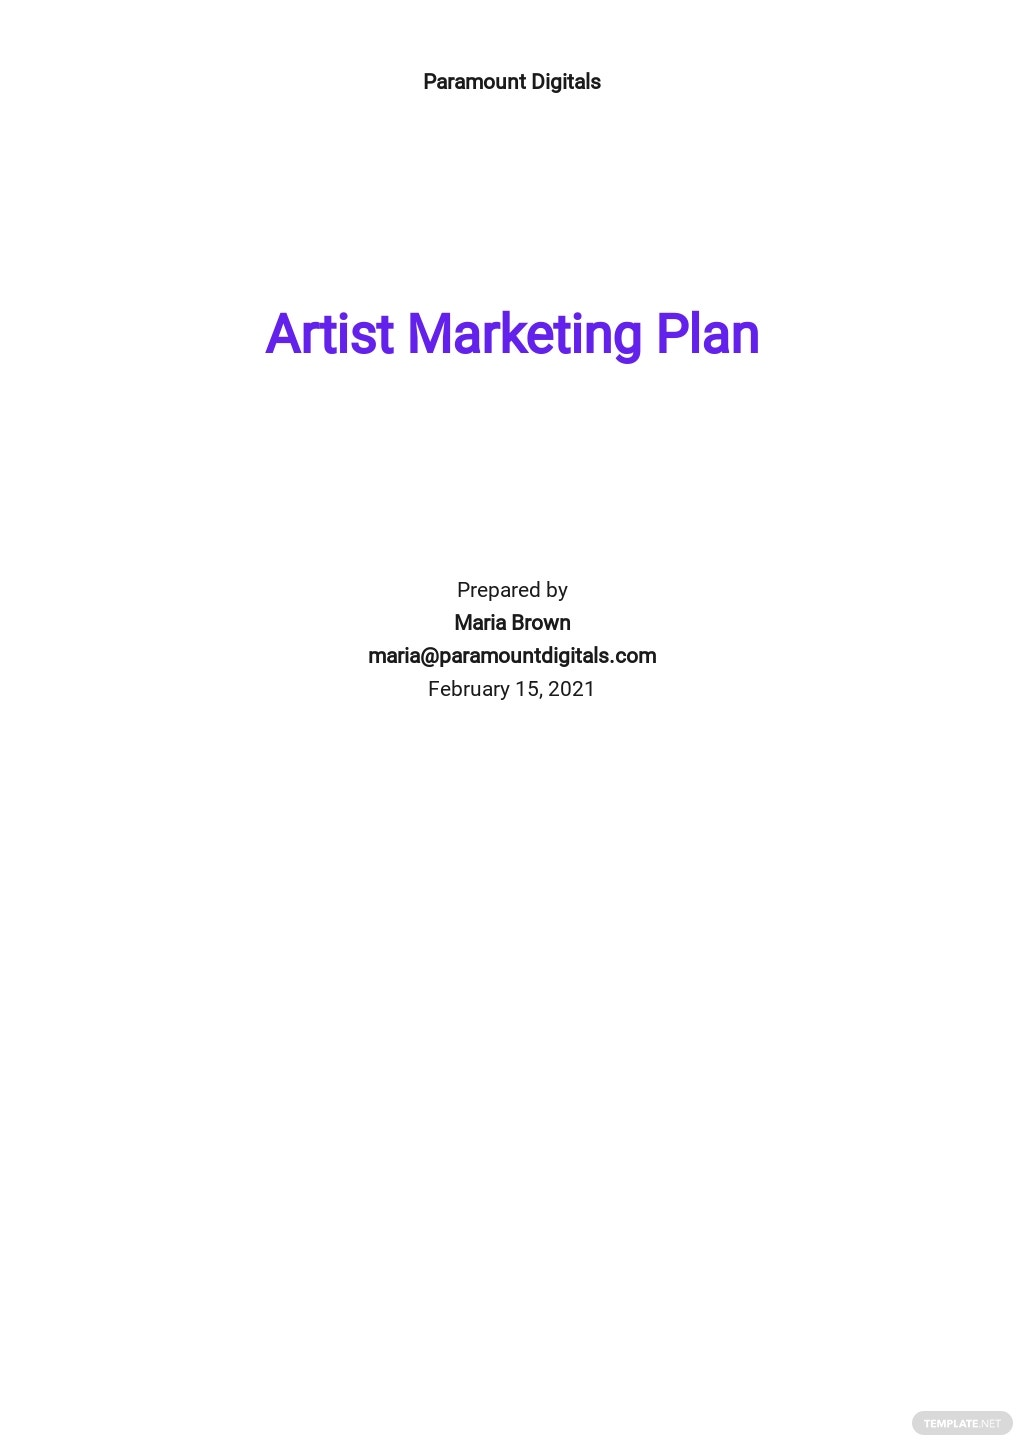 Artist Marketing Plan Template